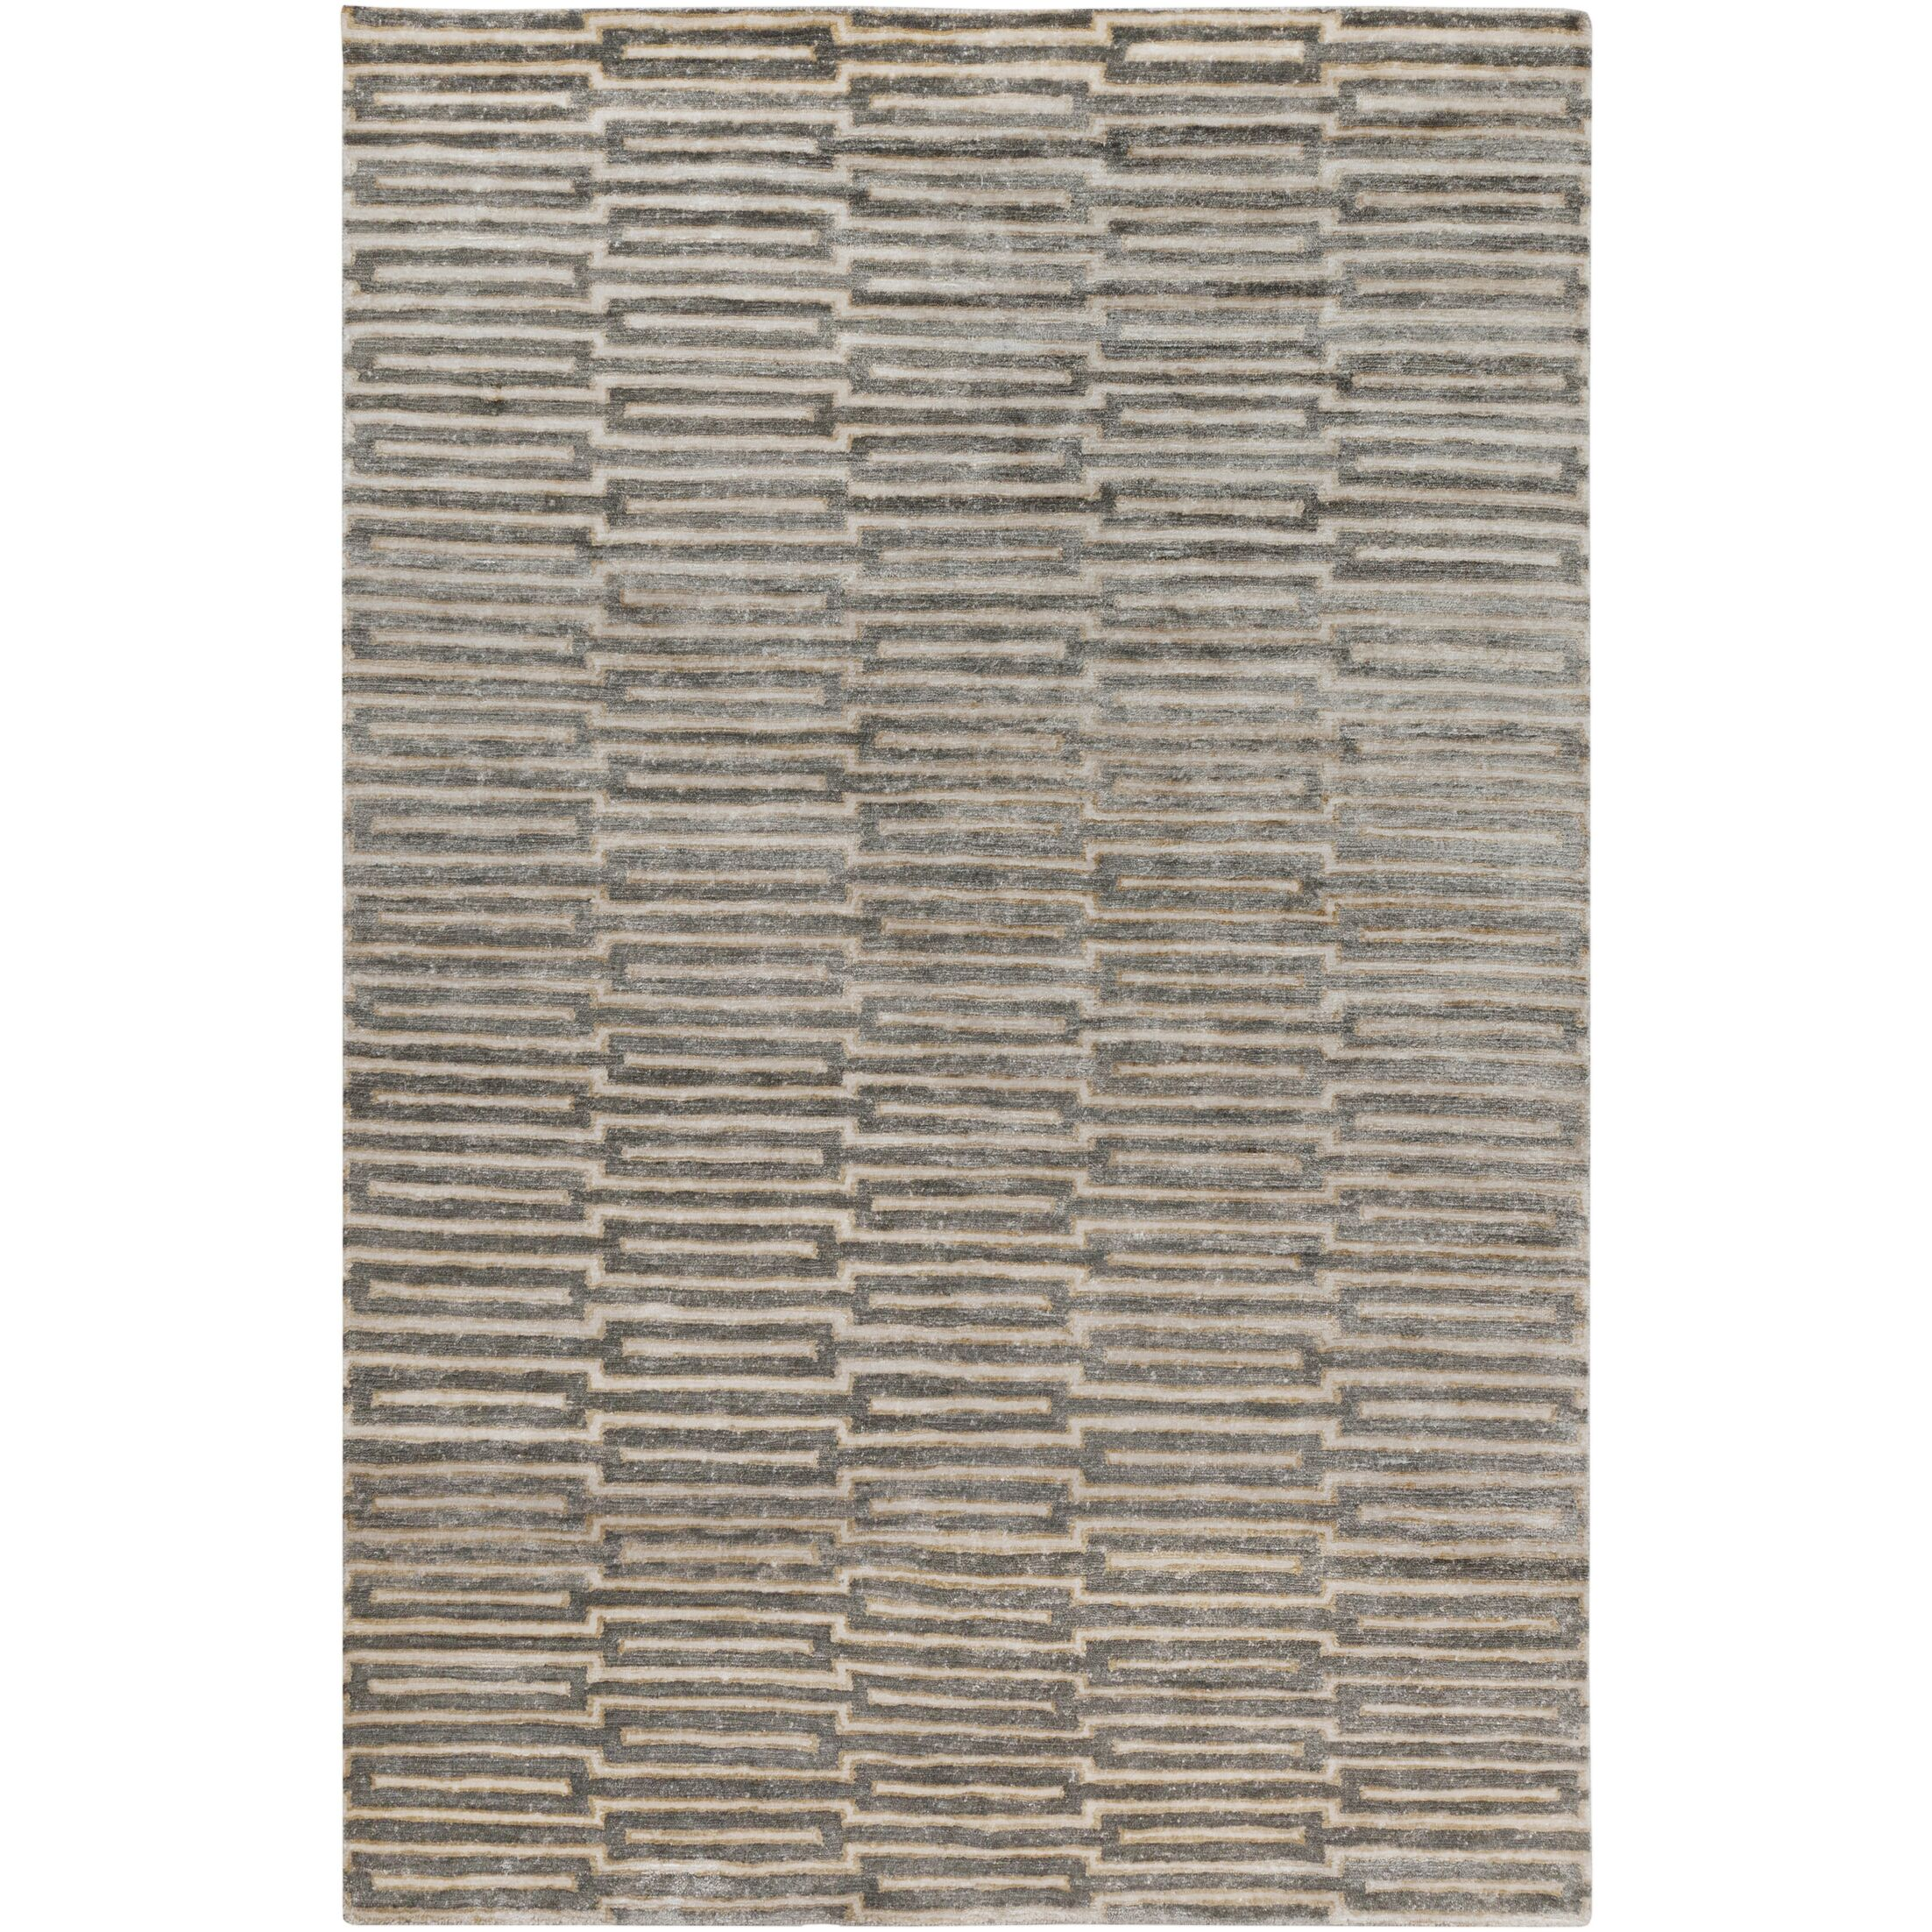 Olinda Hand-Knotted Khaki Area Rug Rug Size: Rectangle 5' x 8'